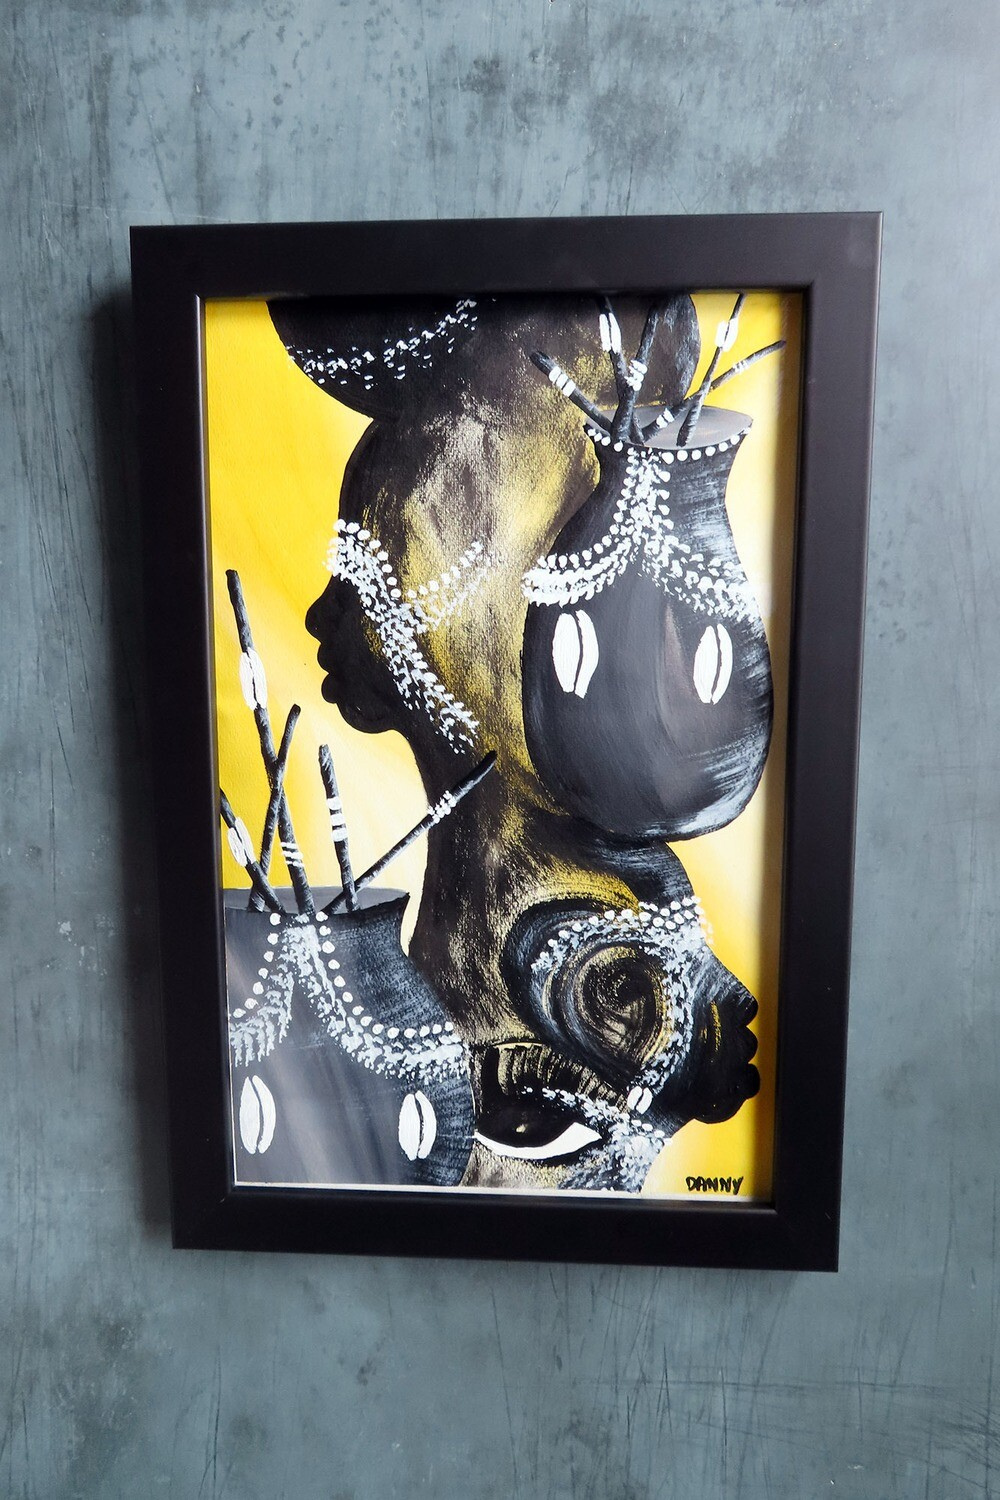 """Framed Painting from Cuba by """"Danny"""""""